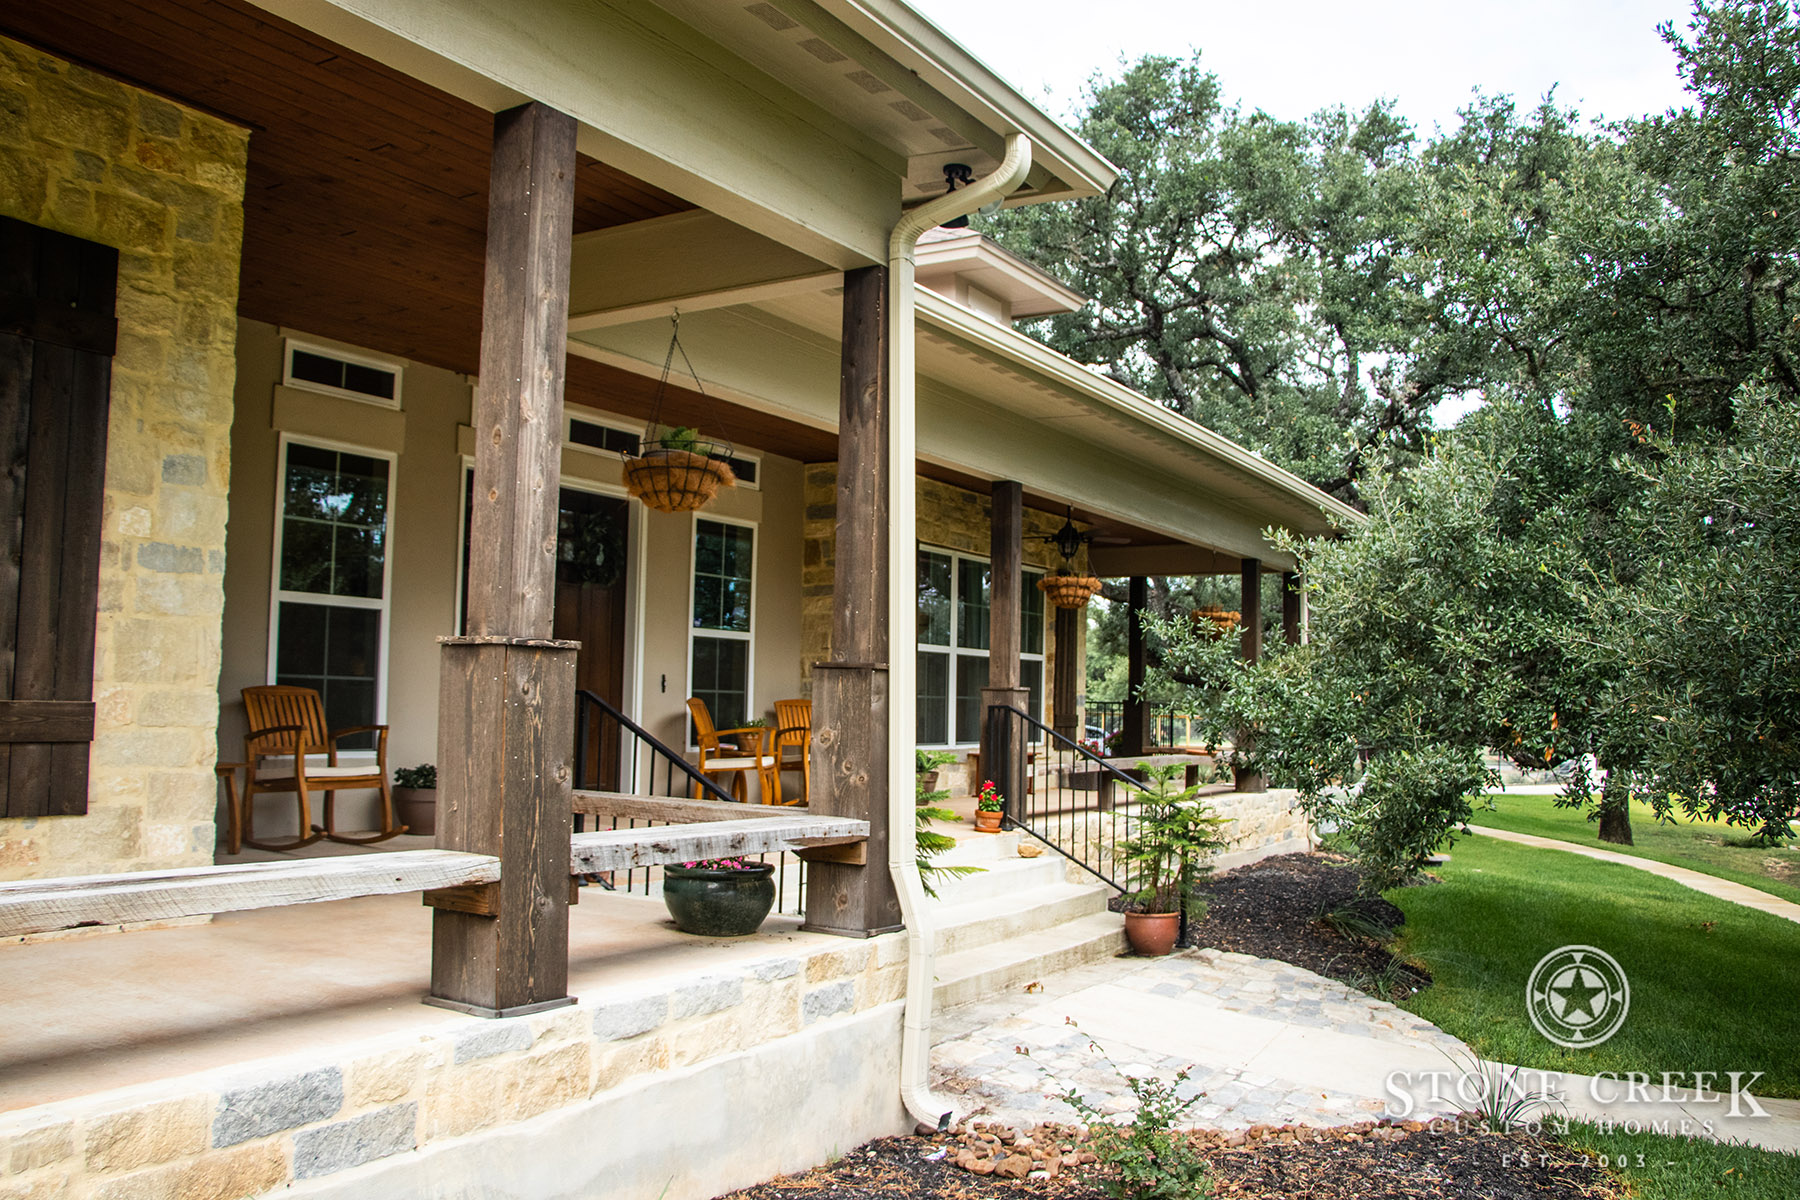 Texas Hill Country Custom Home by Stone Creek Custom Homes